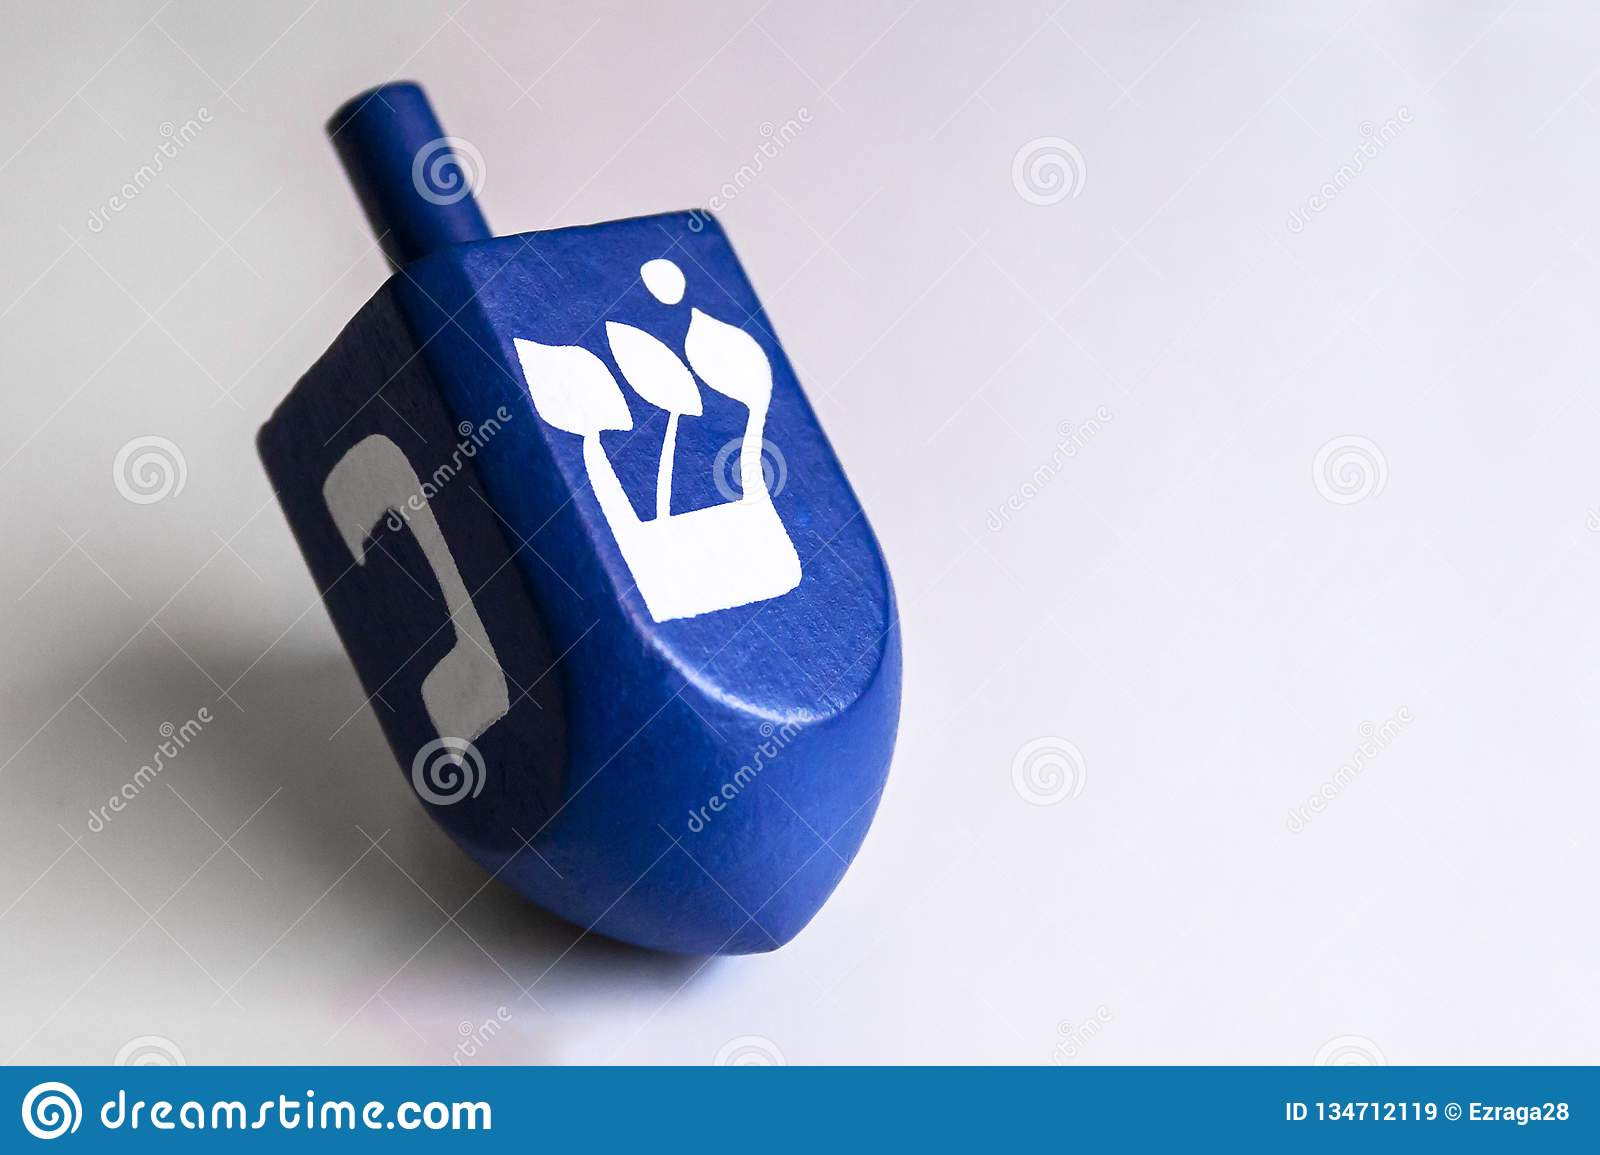 Isolated blue dreidel in a white background